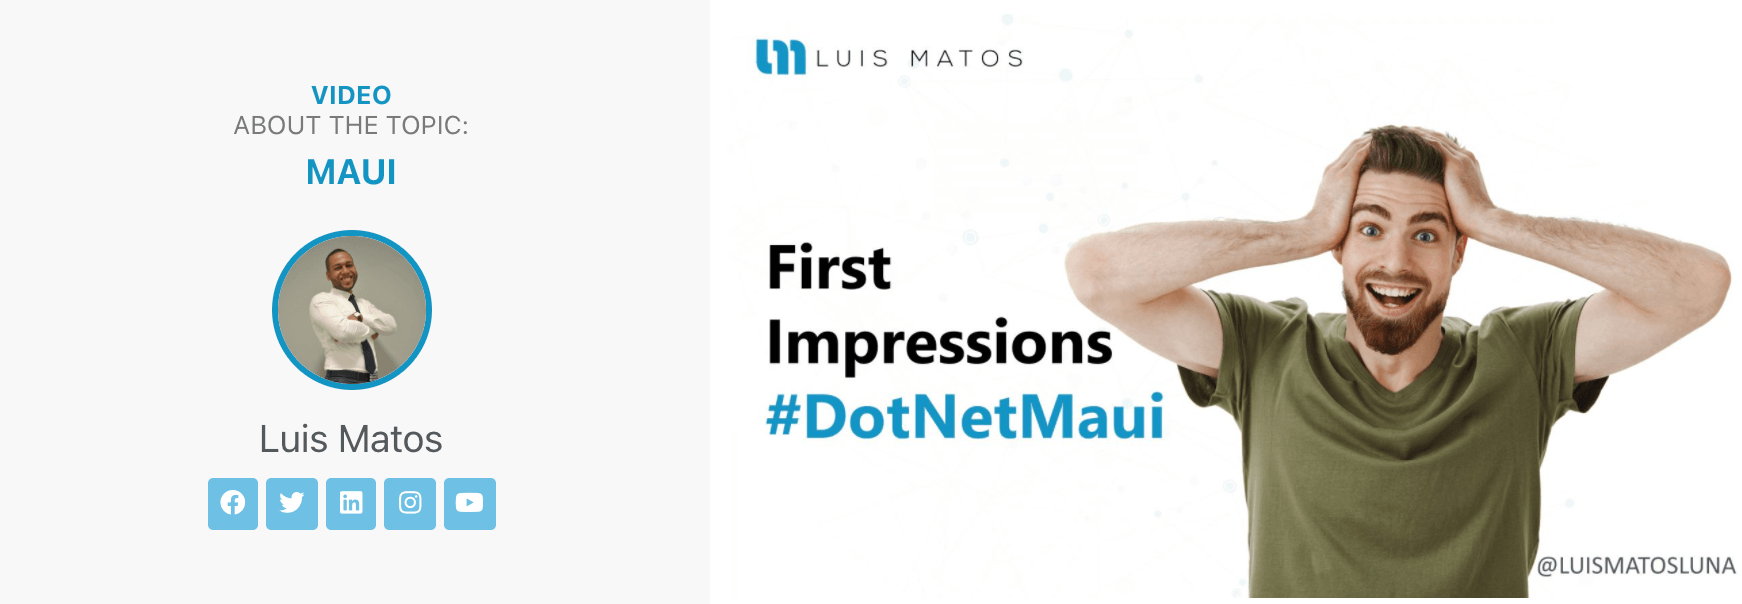 Promo for Maui Impressions video, with Luis Matos holding his head in amazement